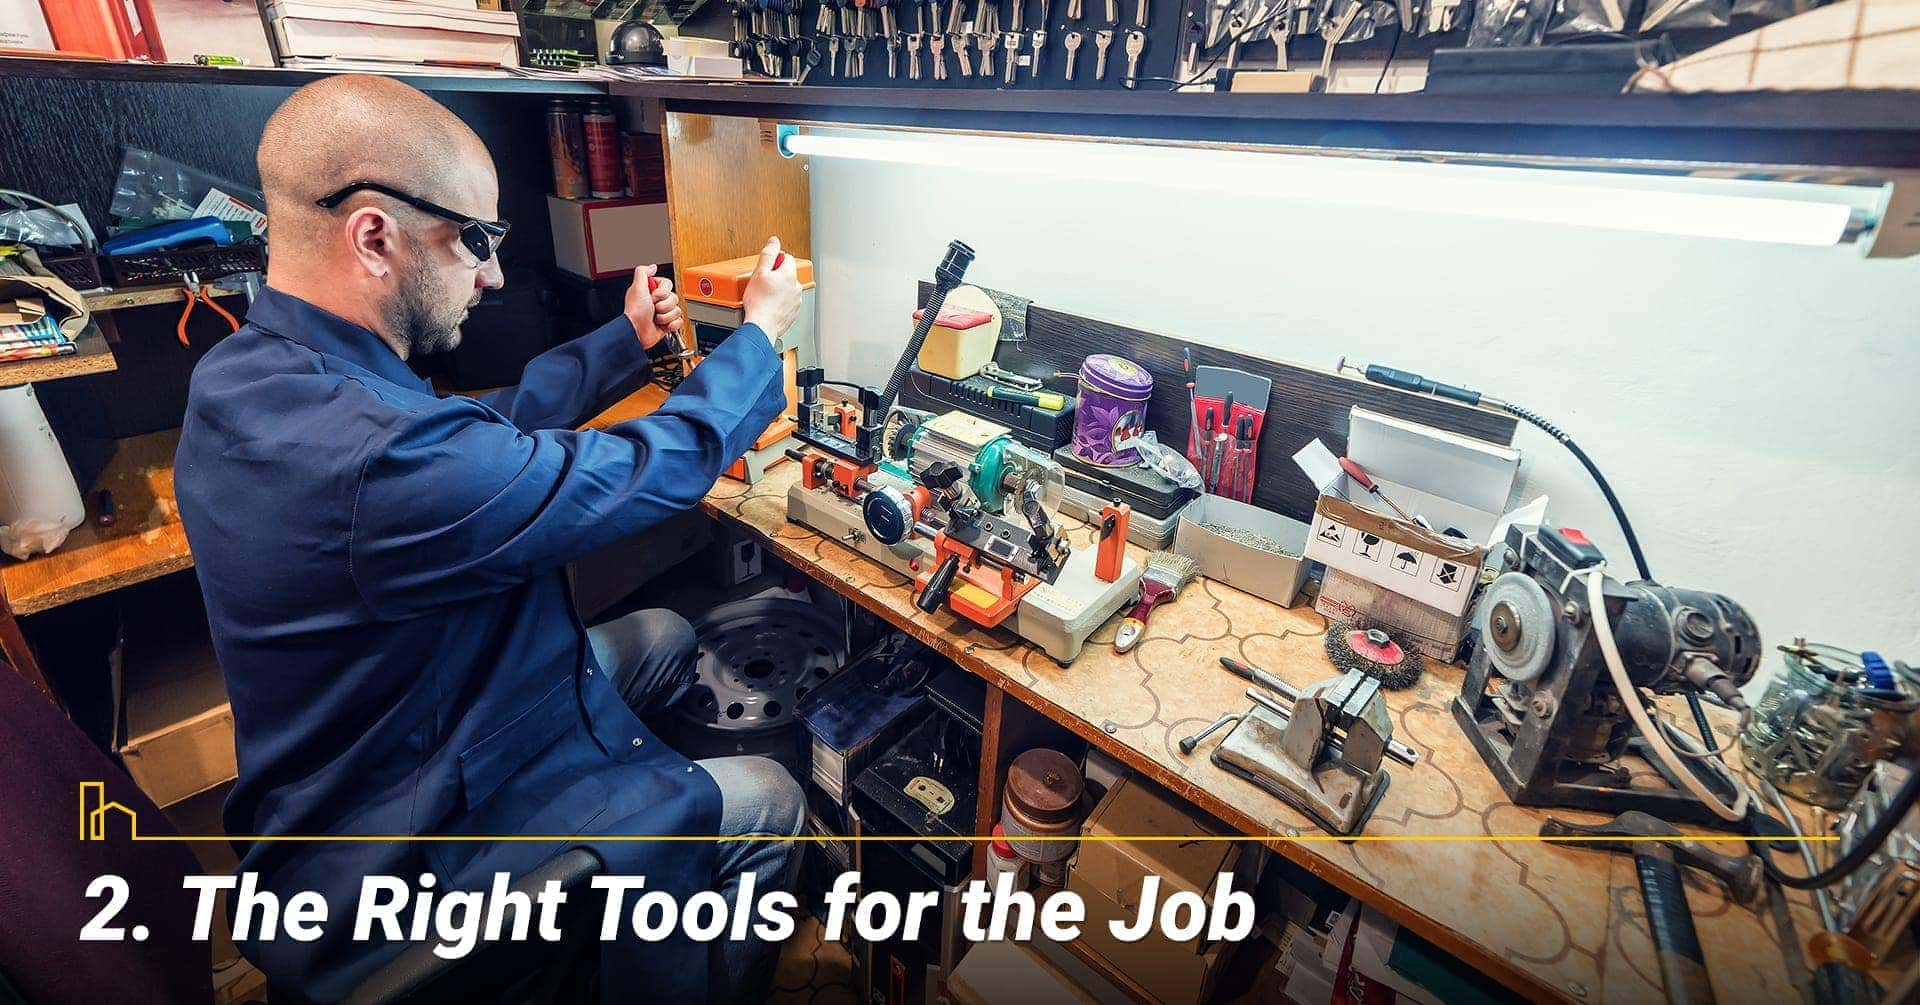 The Right Tools for the Job, they have the right tool to get the job done